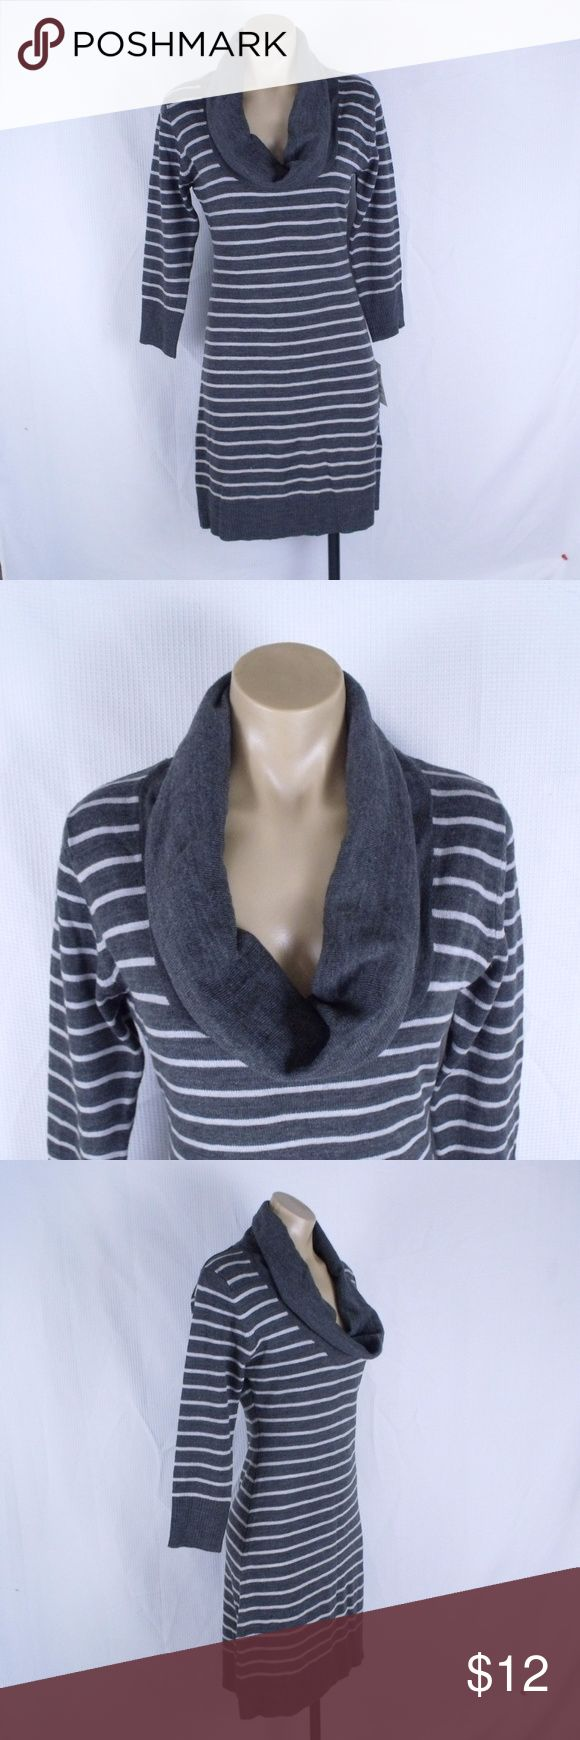 """Connected Apparel Gray Sweater Dress Size: Small  ~ Nice charcoal gray striped sweater dress with cowl neckline. 3/4 length sleeves, dark and light gray stripes, pullover style. Career or casual. ~ 100% acrylic ~ Actual measurements - 39"""" long, 18"""" underarm to underarm, 20"""" sleeve length.  New with tag. Connected Apparel Dresses"""